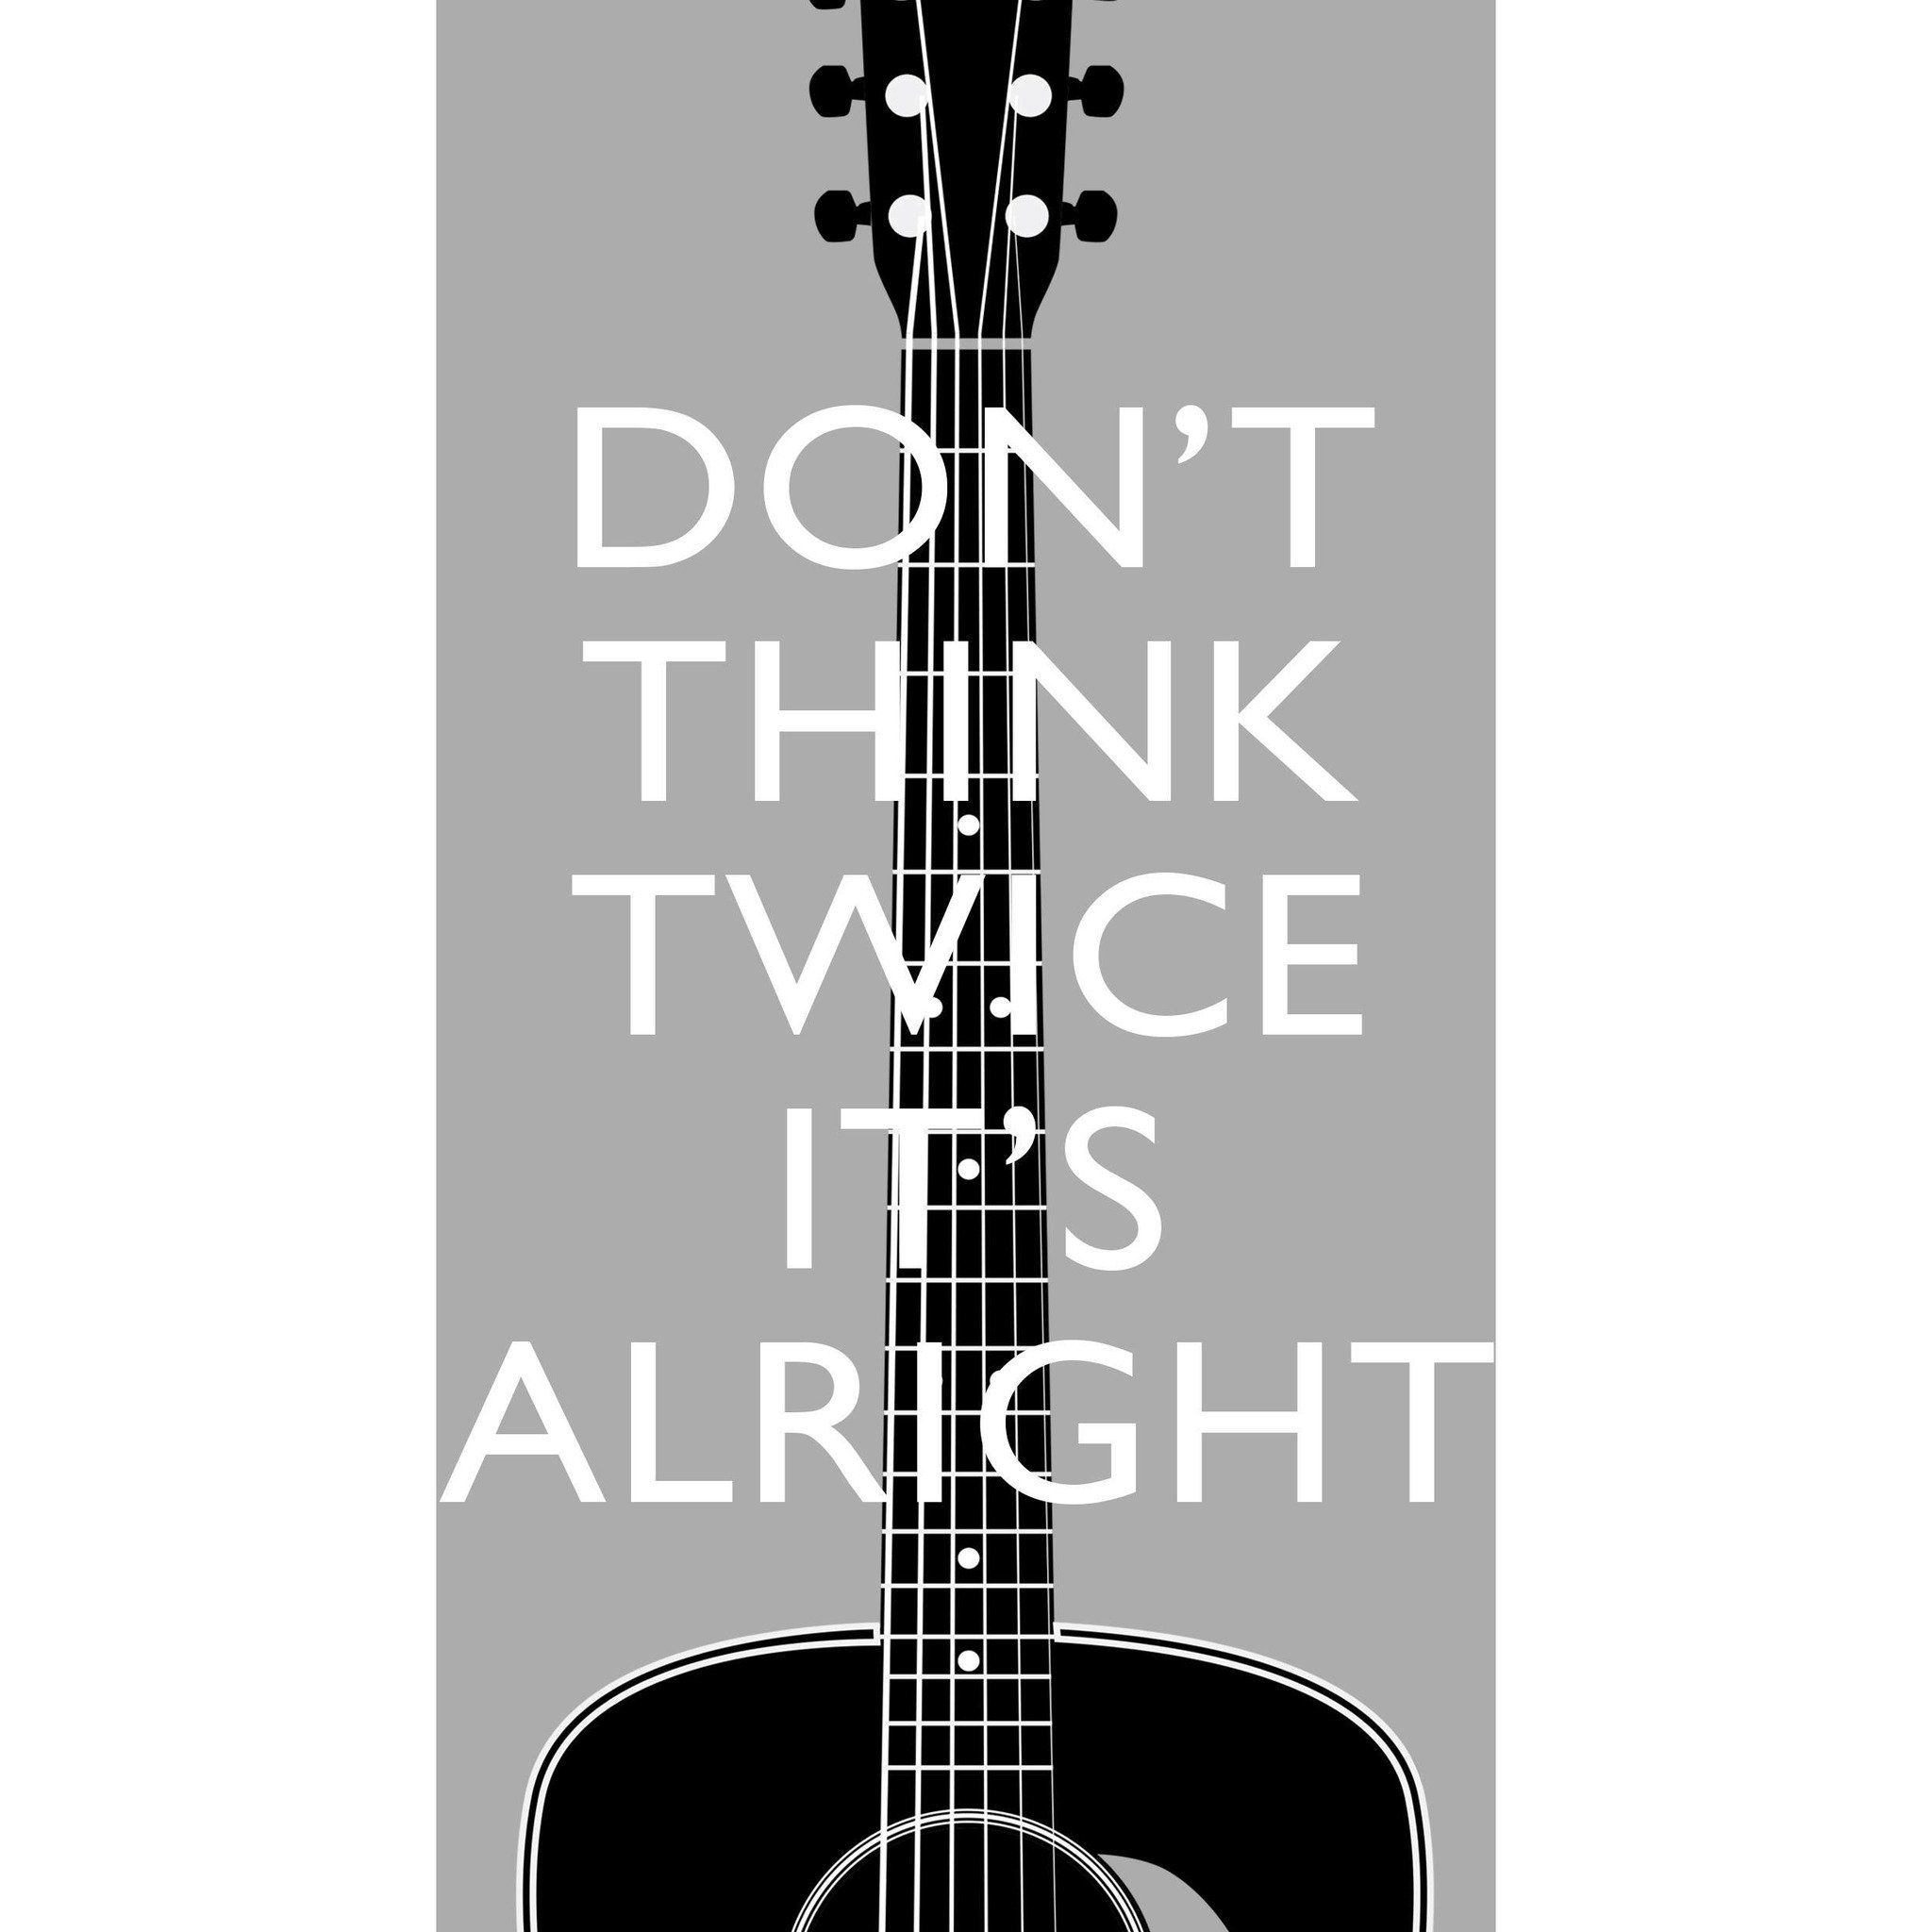 Bob dylan quote, music poster in 2019 Bob dylan quotes